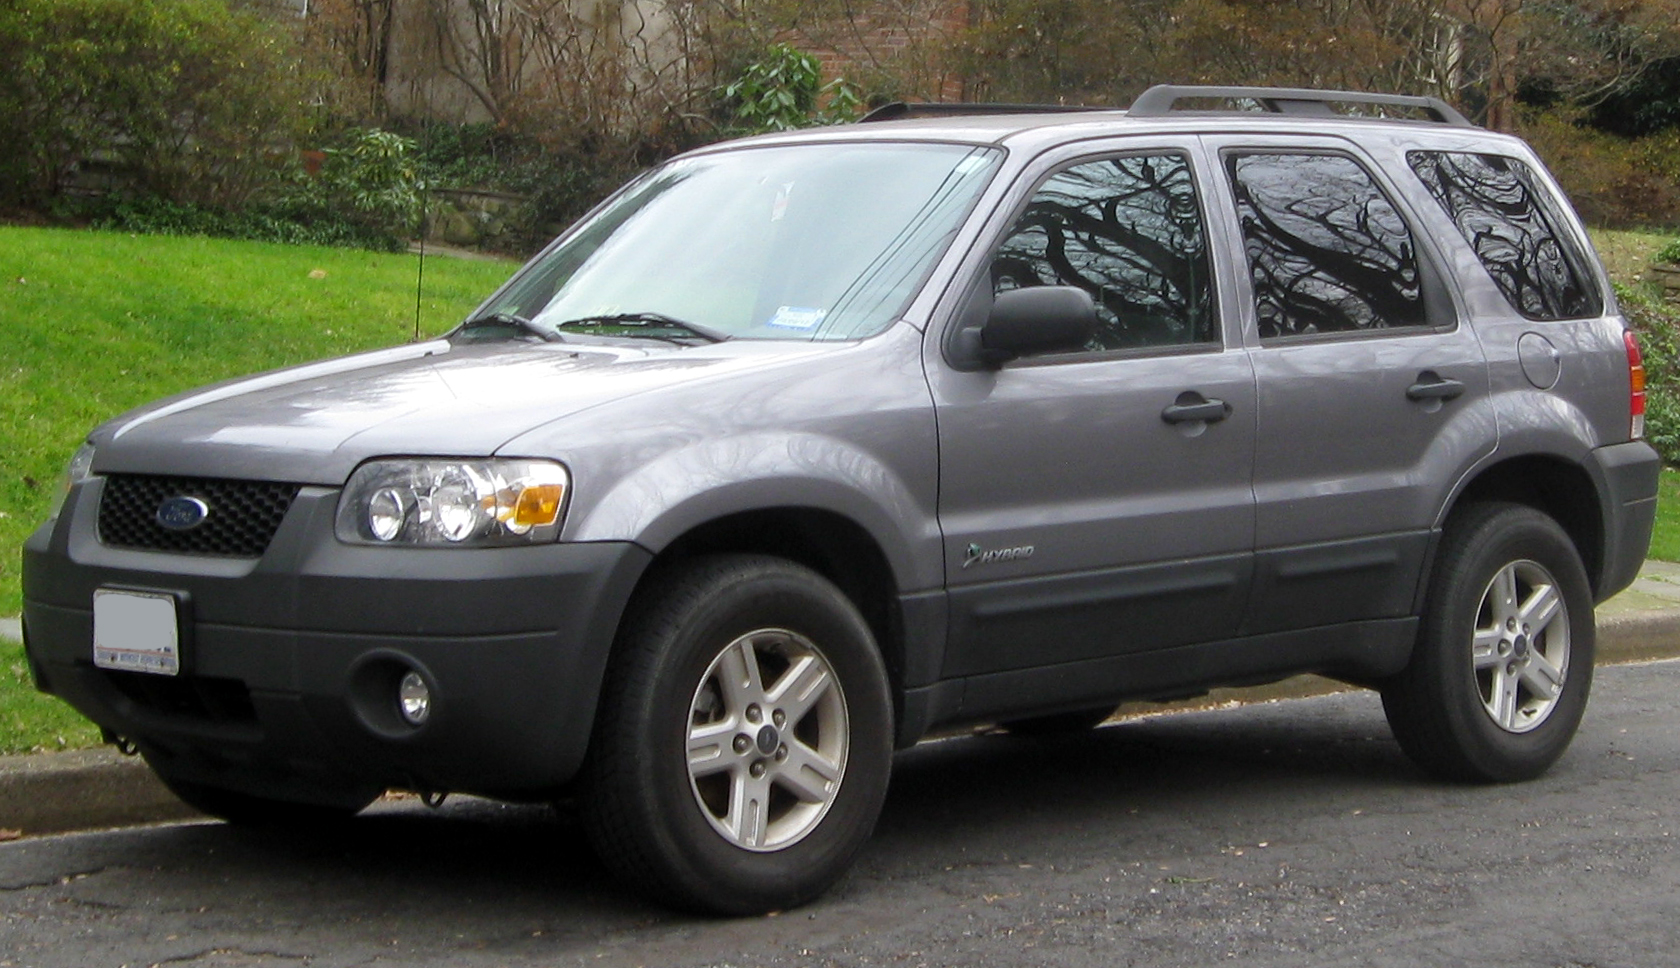 Are 2005 Ford Escapes Reliable